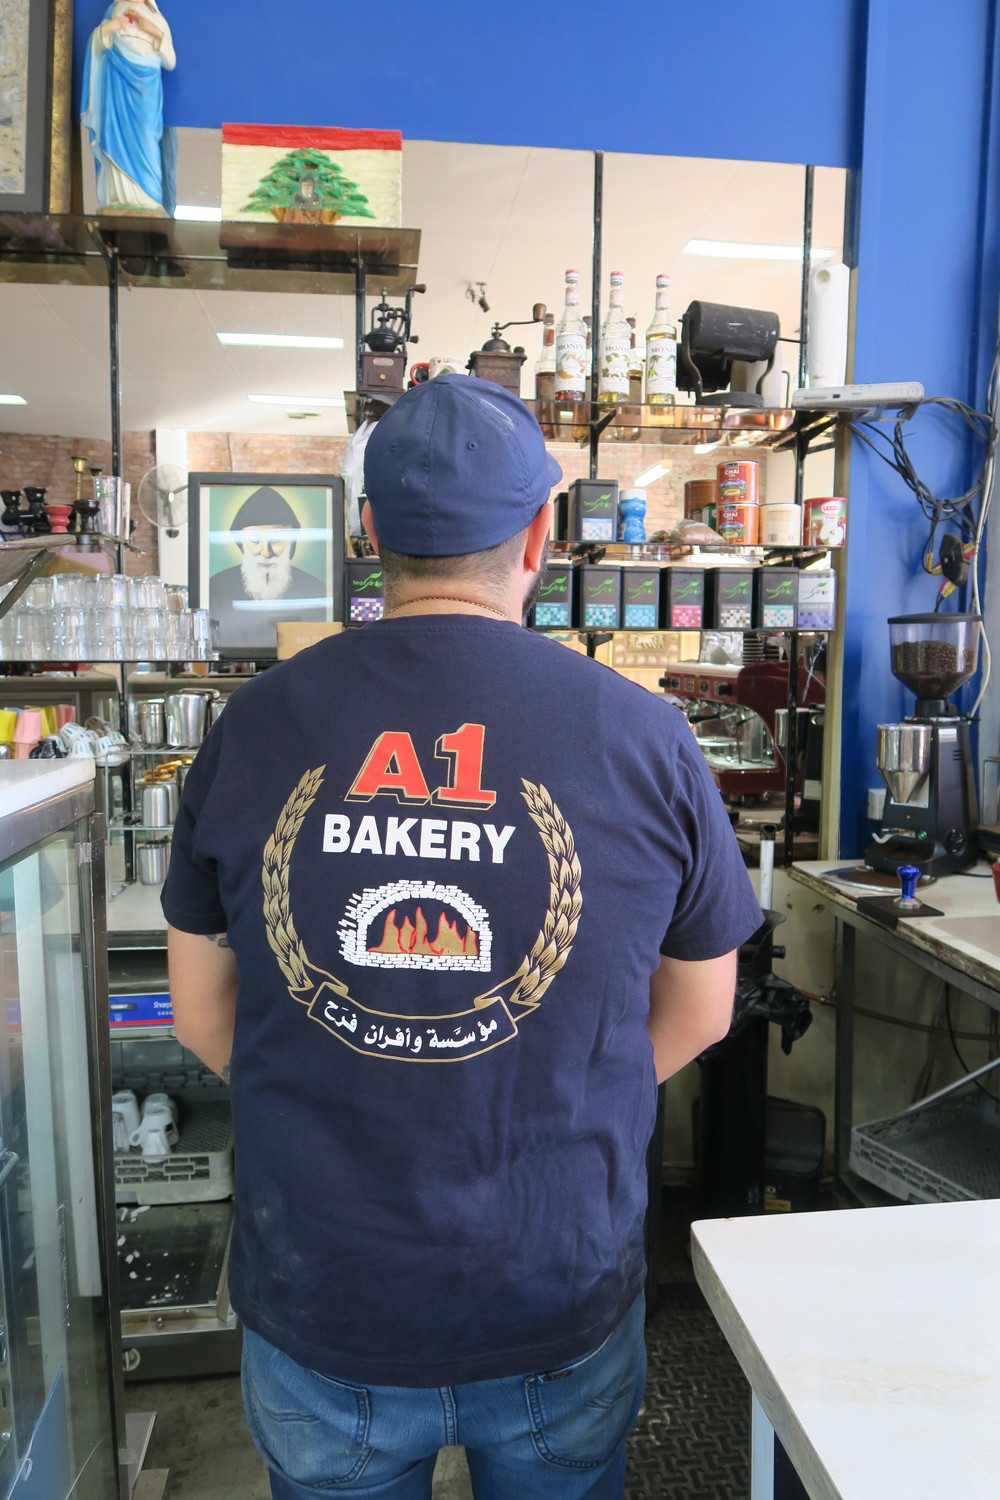 Team A1 Bakery.